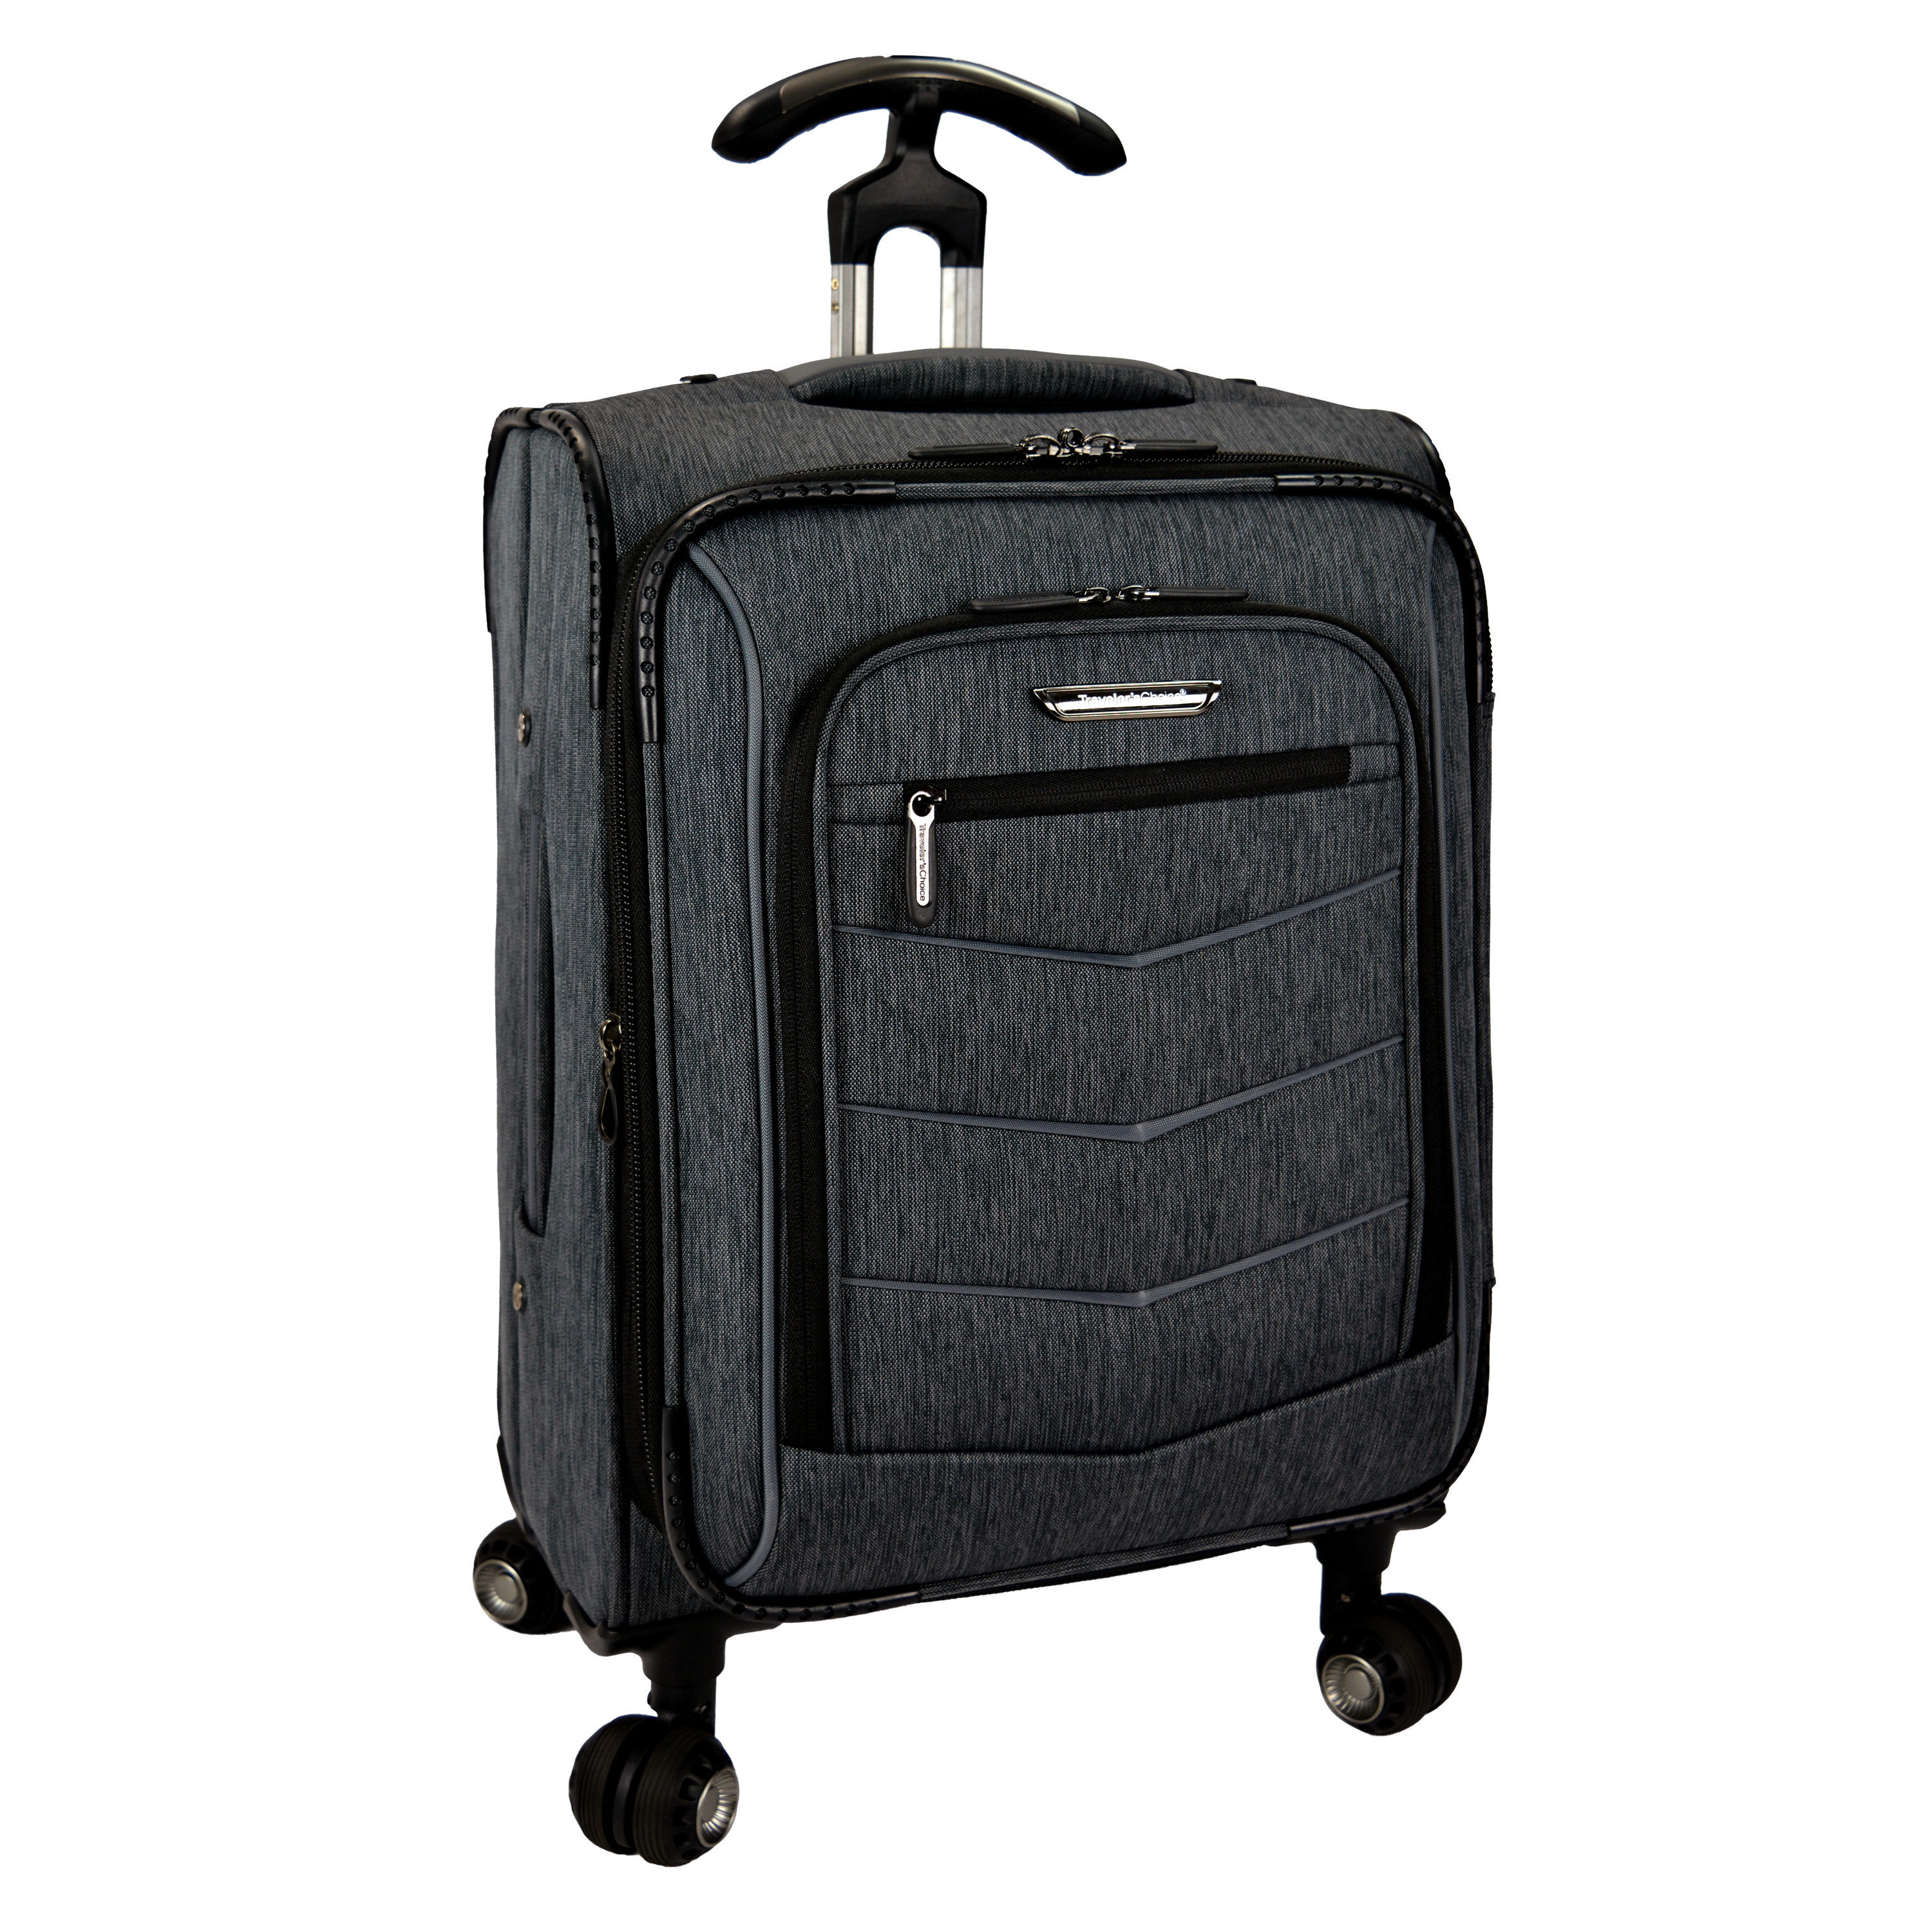 Travelers Choice Silverwood 21 Inch Expandable Carry On Spinner Upright Suitcase Free Shipping Today 11729287